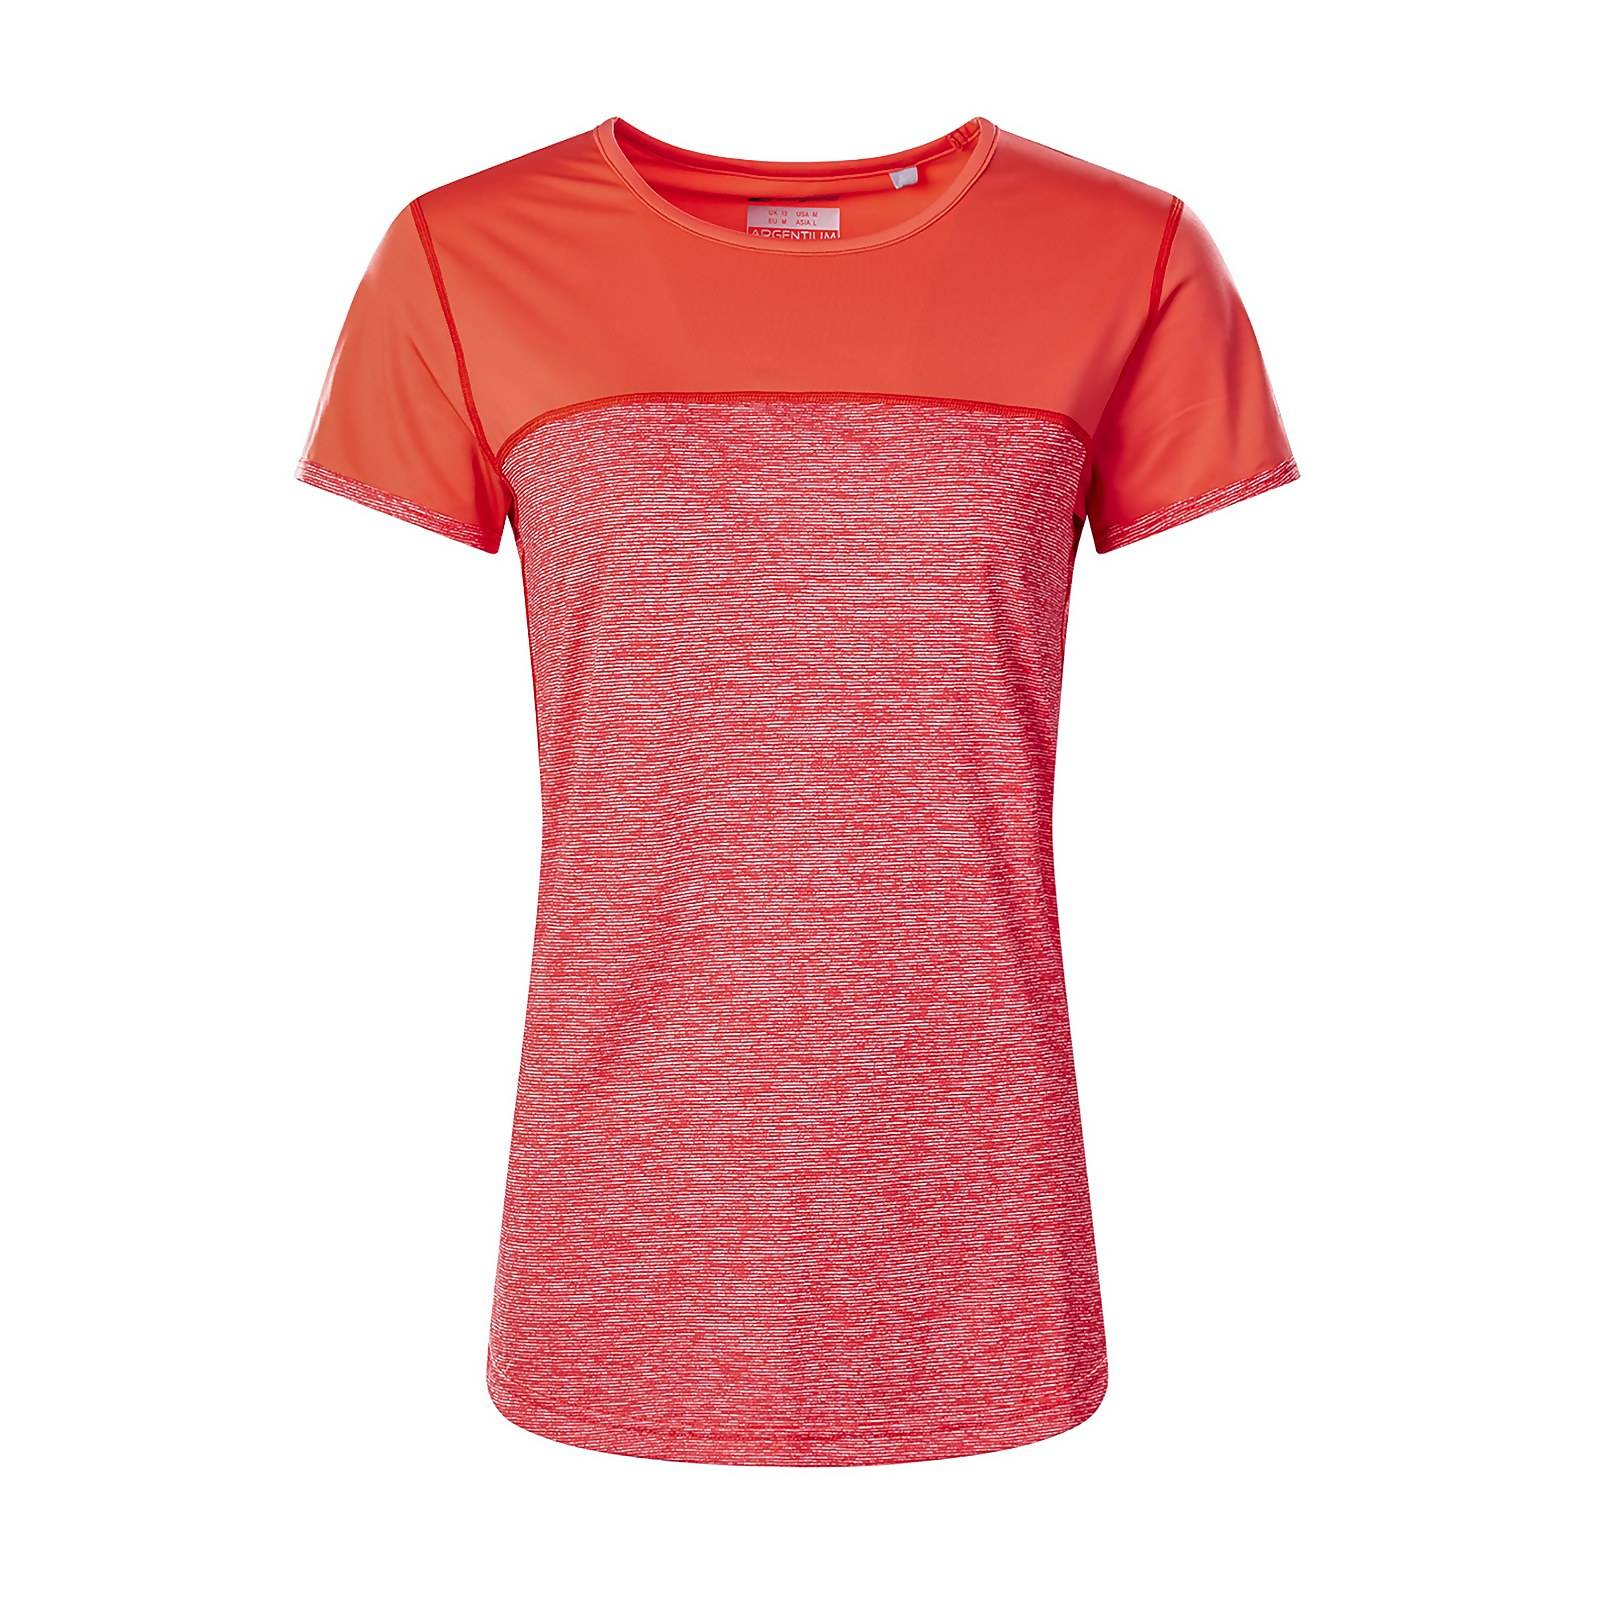 Berghaus Women's Voyager Tech Tee SS Crew - Red - 16  - Red - Size: 16